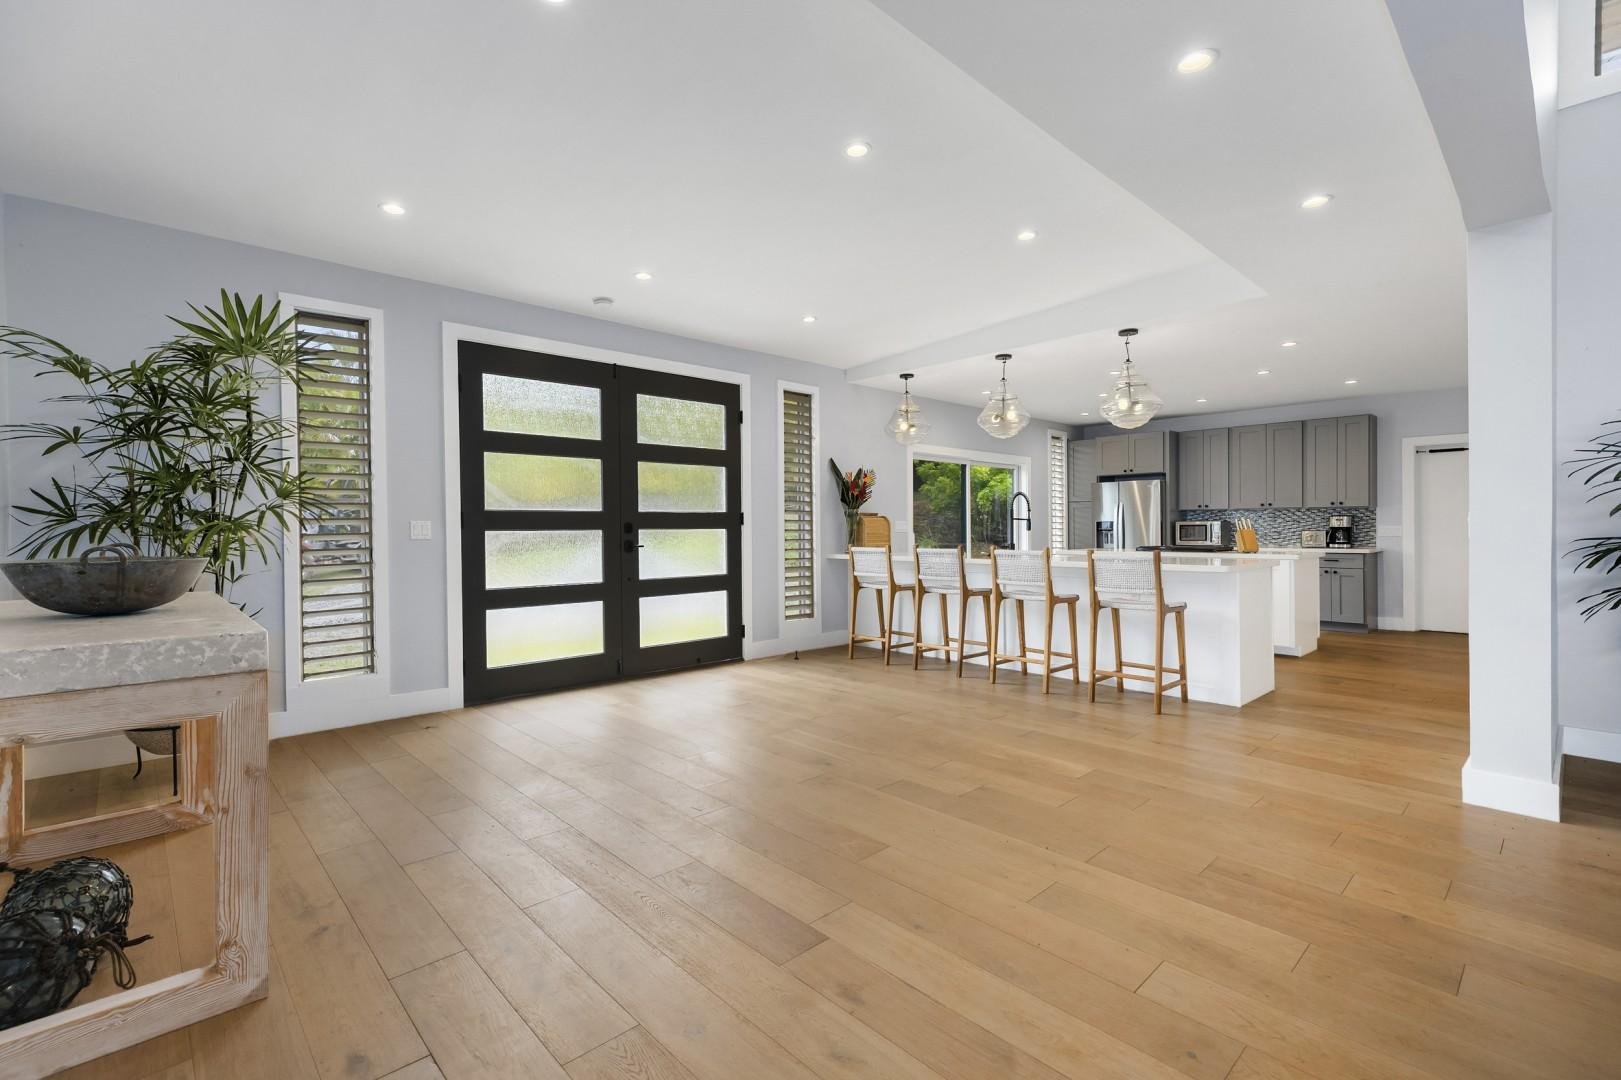 Front entry doors leading into a large foyer with open kitchen.